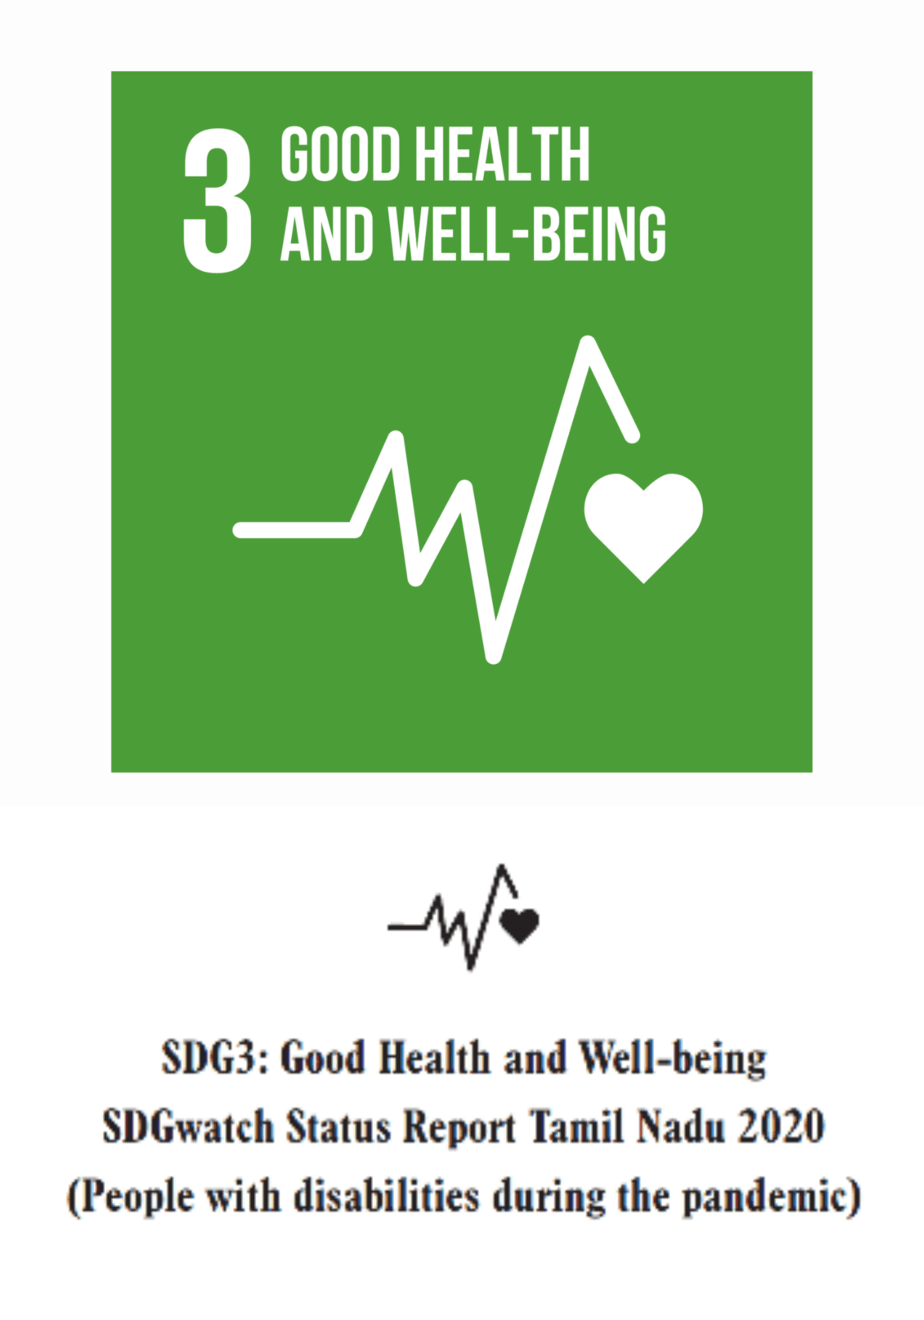 SDG3: Good Health and Well-being (Southern Region)